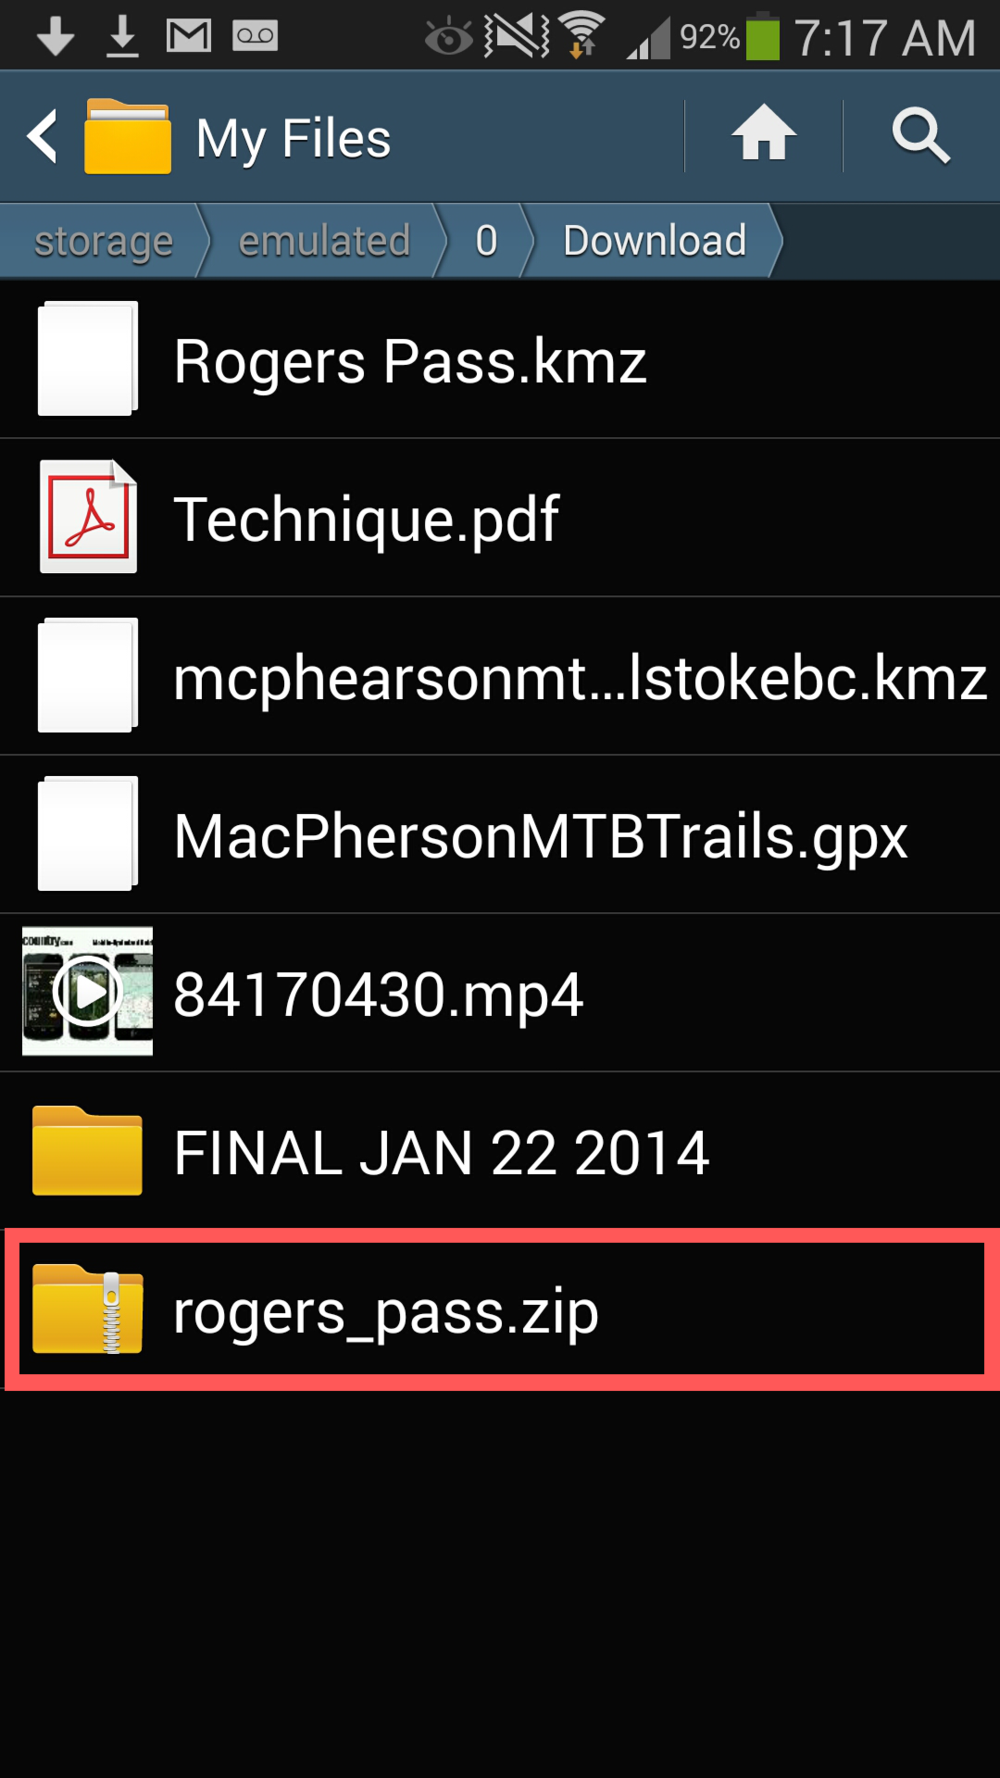 Image 7: Click on 'rogers_pass.zip'.